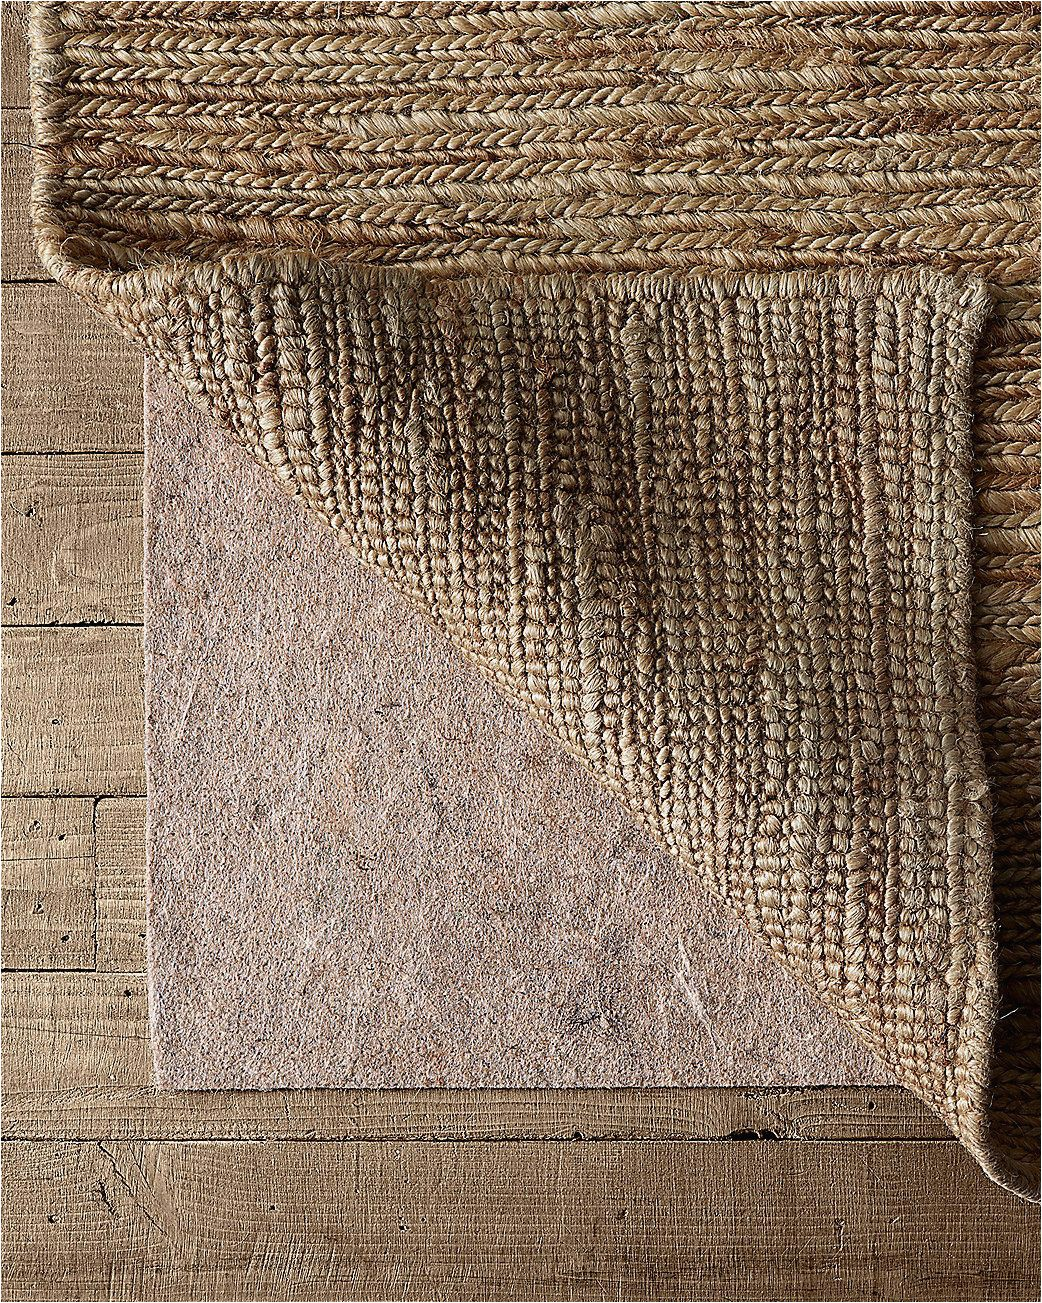 Heating Pad for Under area Rugs Low Profile Rug Pad